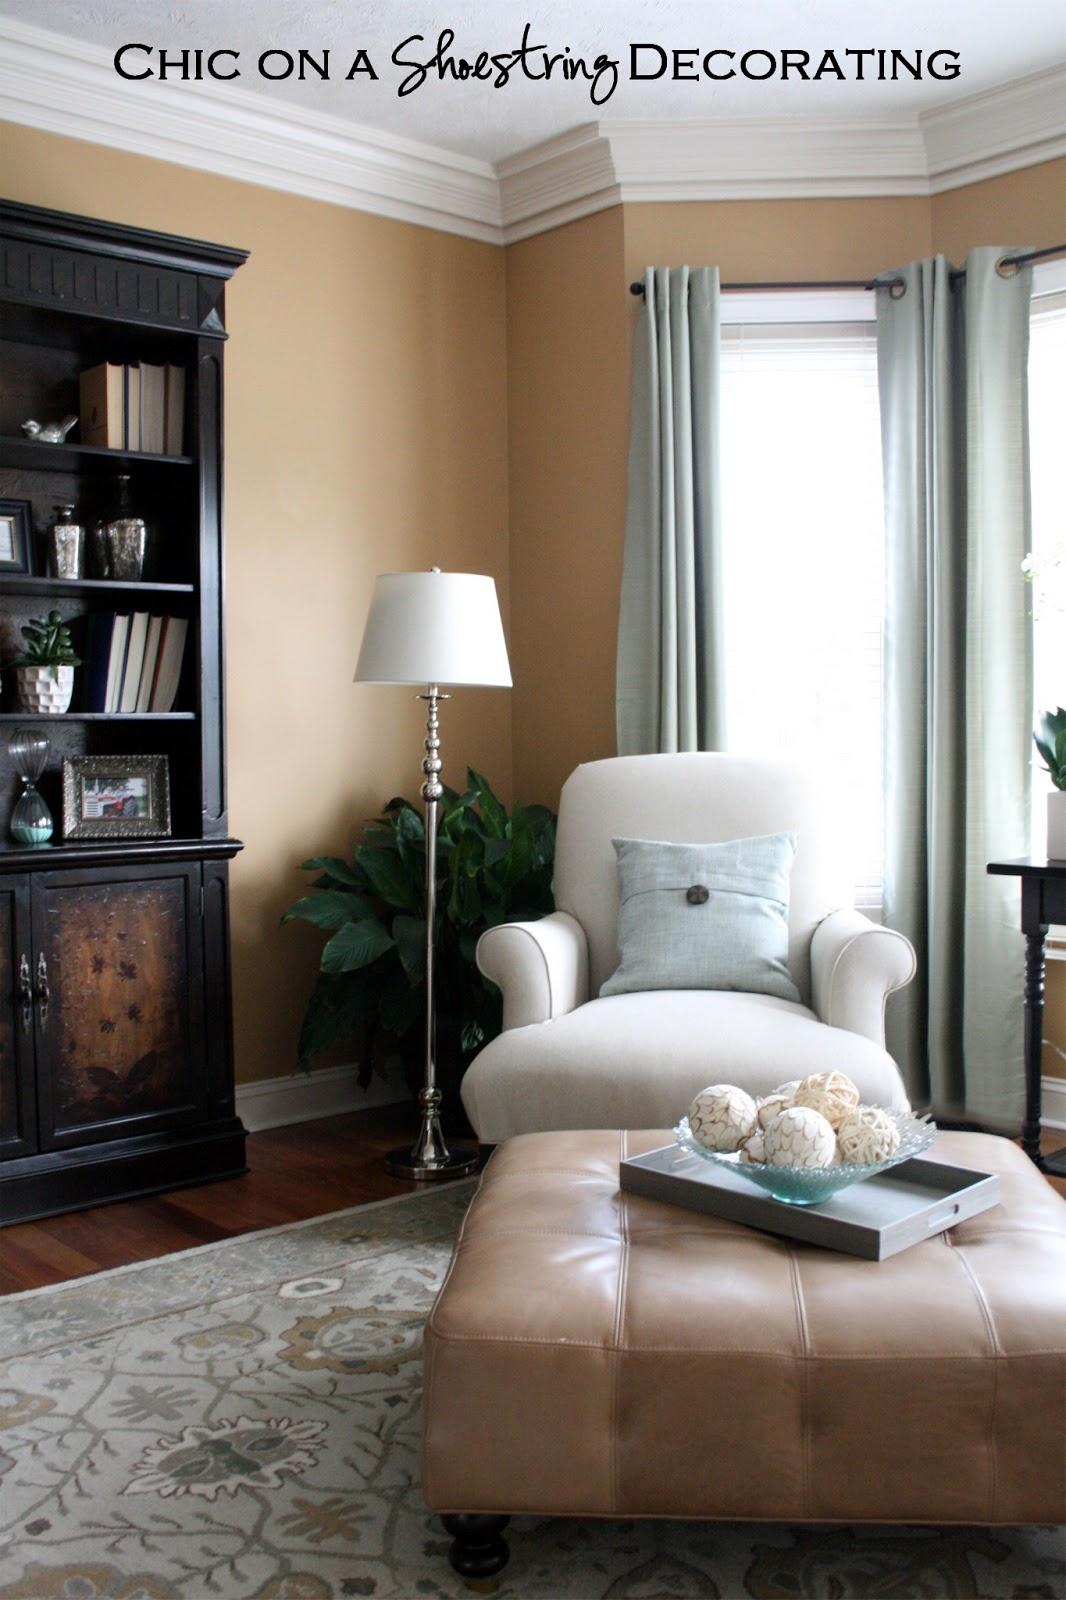 Beige Color Palette Living Room Small Modern Chic On A Shoestring Decorating: Grand Piano